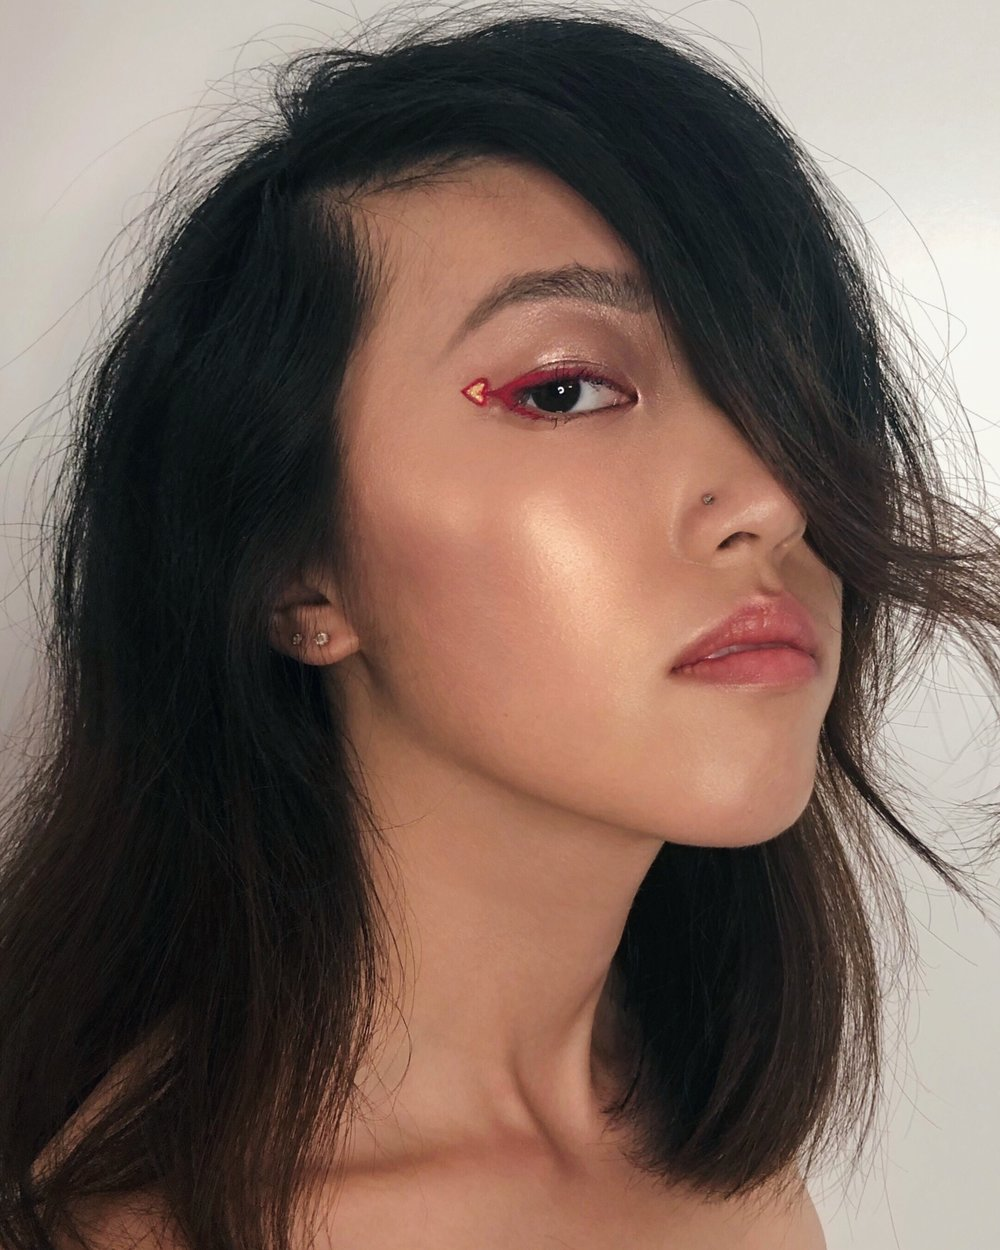 This look was created with  Sigma Line Ace  in Sigma Pink and  Jane Cosmetics Water Resistant Eye Liner  in 14k Gold! For her highlights, I used  Maybelline Face Studio Master Chrome Metallic Highlighter  100 Molten Gold